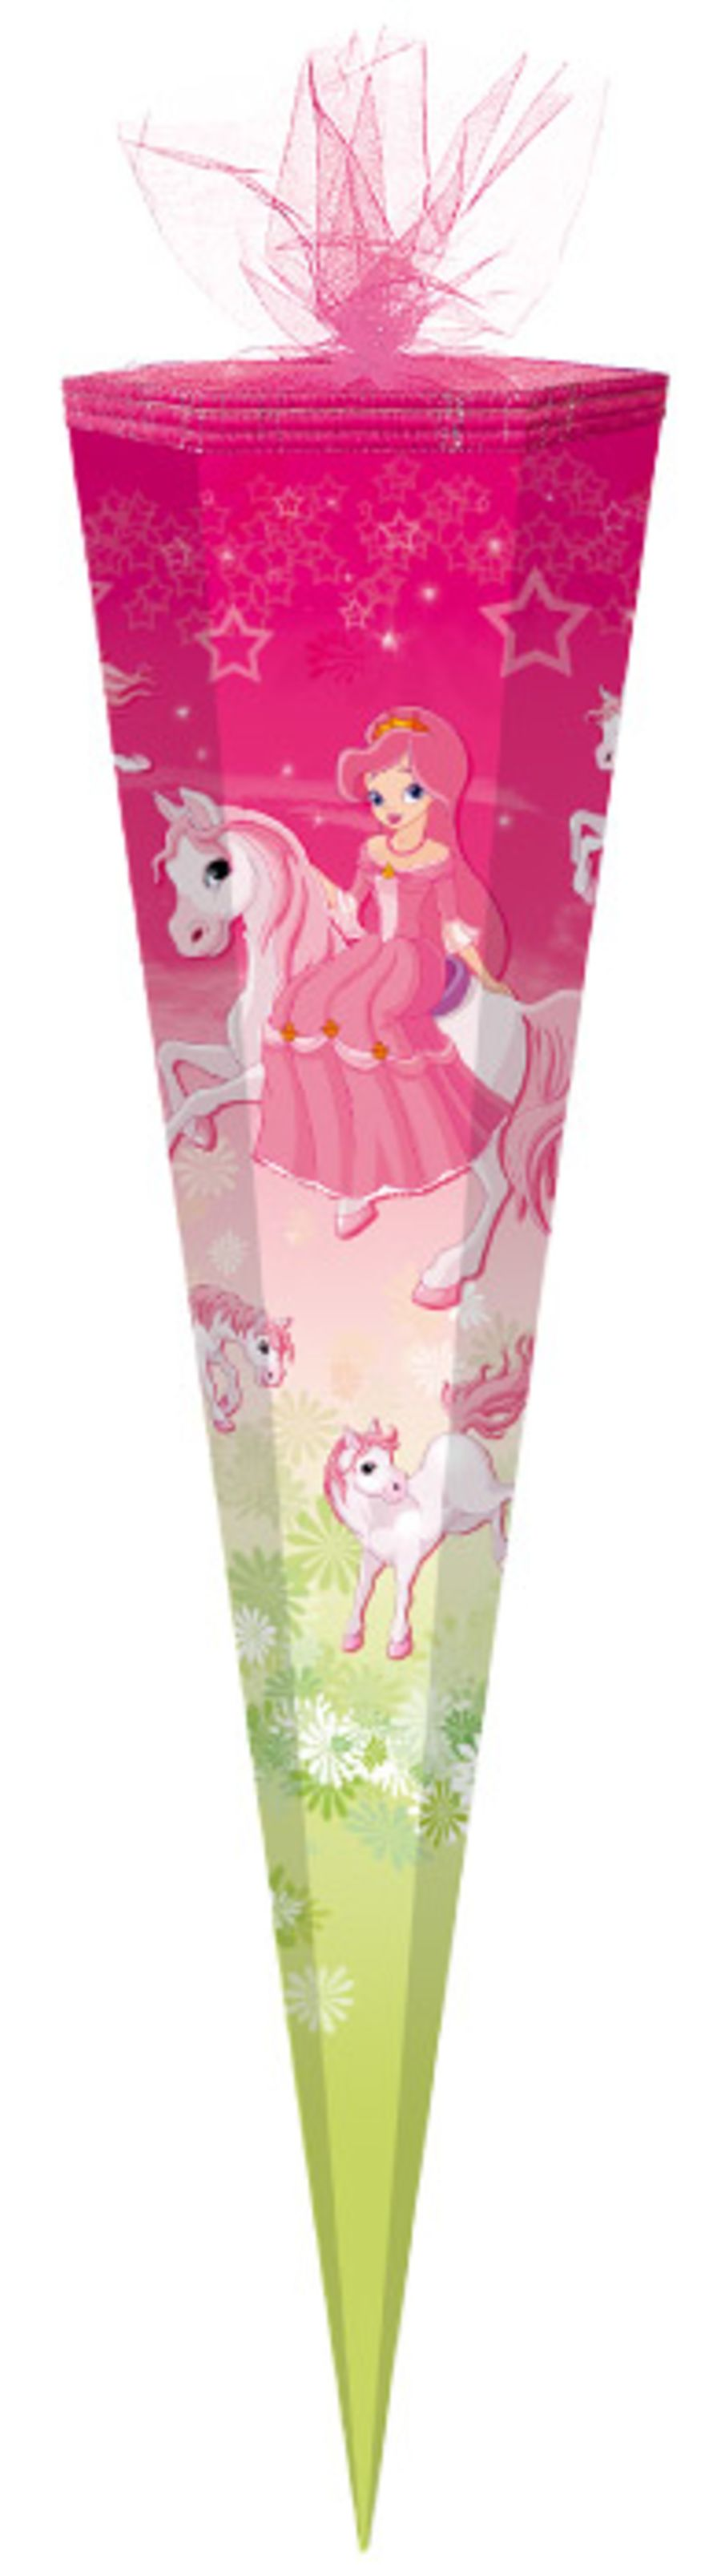 Seconds Pink Princess Unfilled Kiddicone